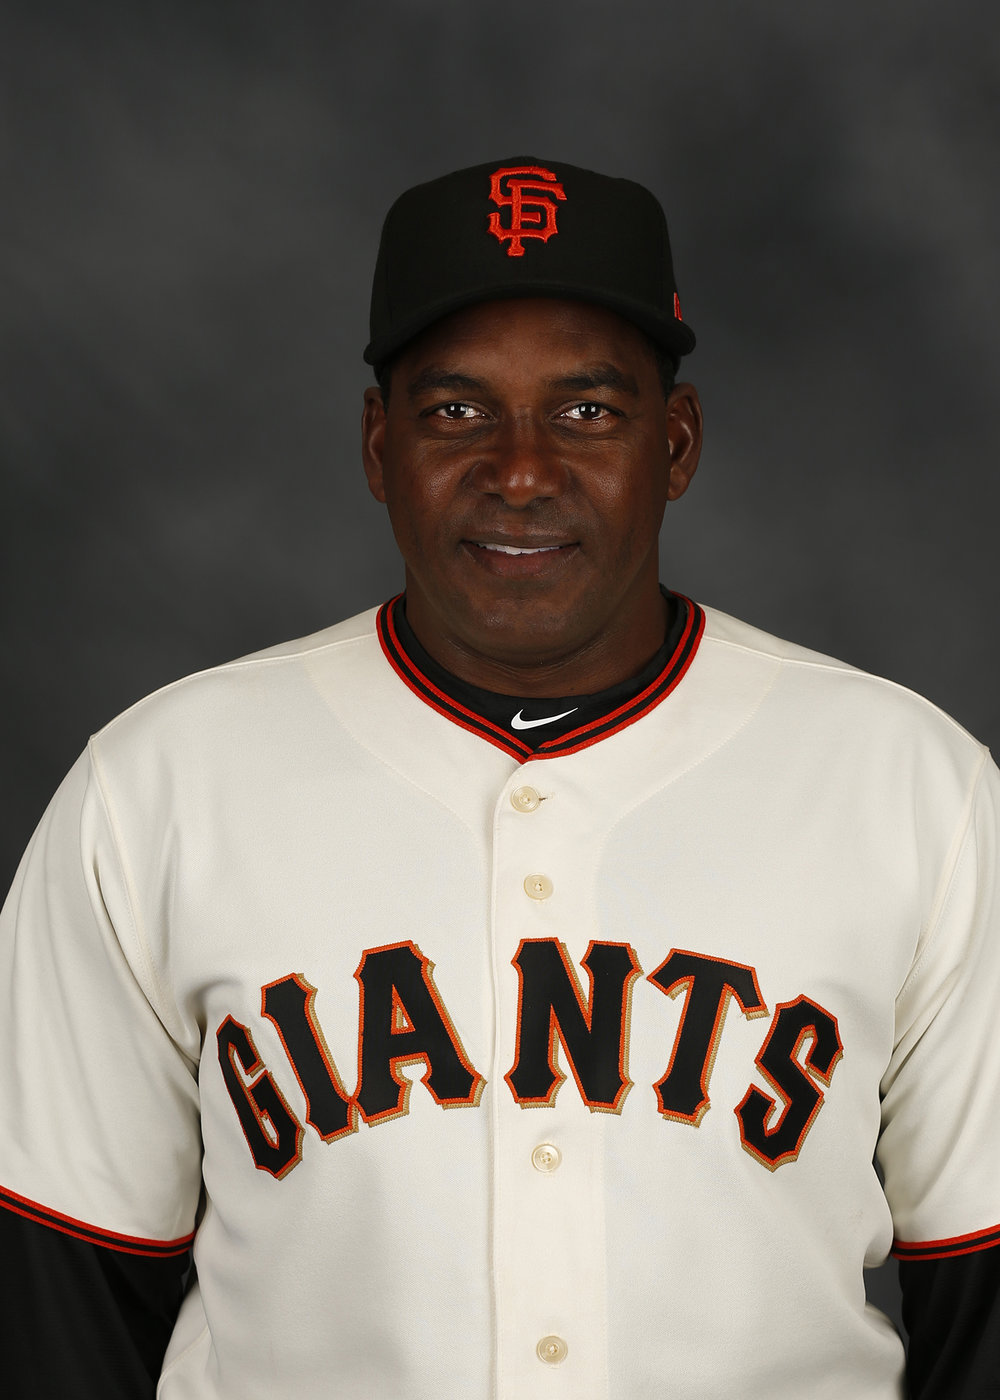 "Hensley ""Bam Bam"" Meulens   Hensley Meulens begins his ninth season on the Giants coaching staff and his first as bench coach. In his new role, Meulens manages the day-to-day administration and participates in the in-game strategy. Meulens also will be responsible for the outfield defense instruction, positioning and preparation."